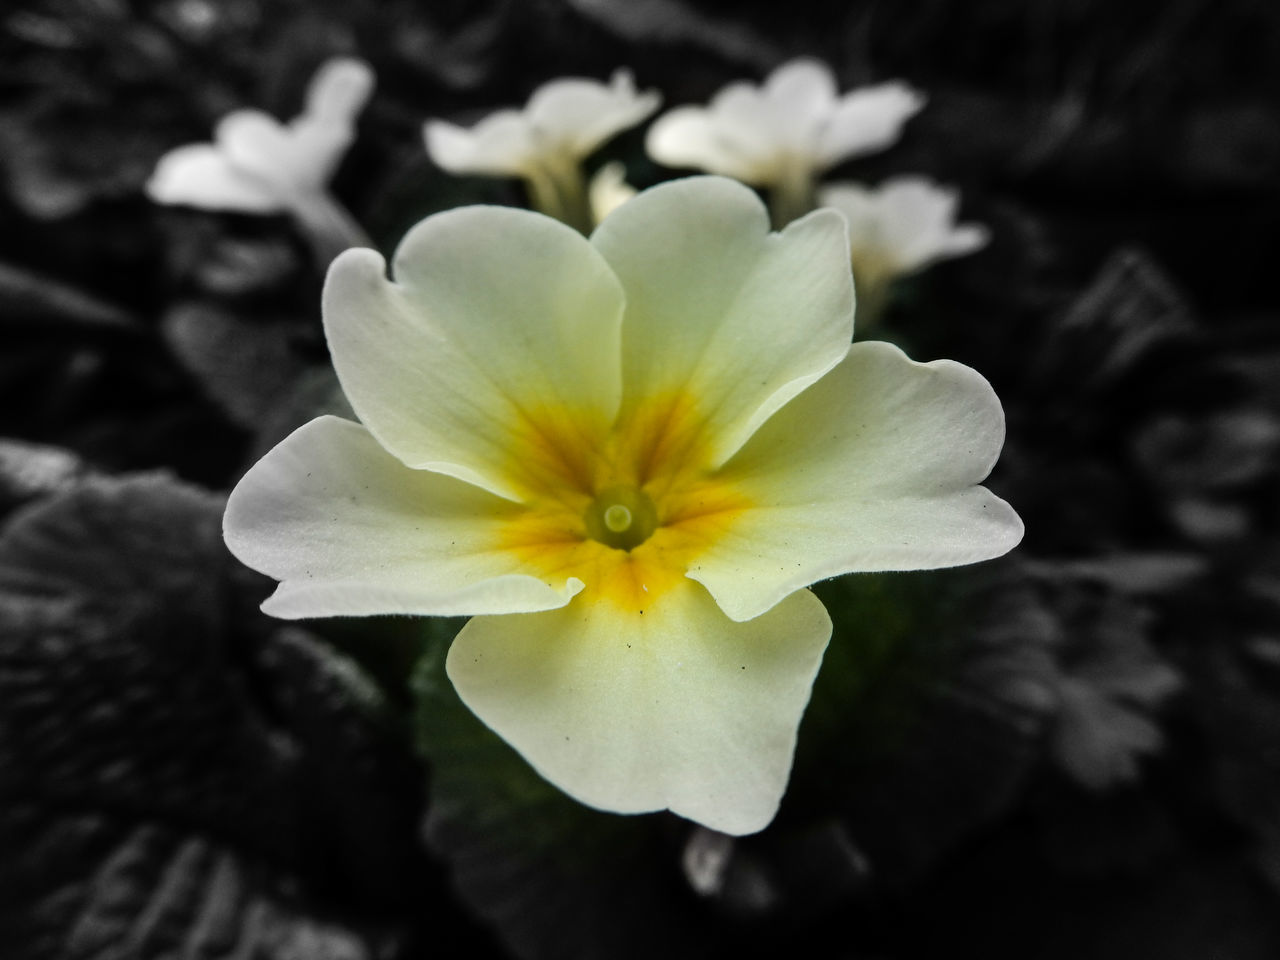 I love wild primroses. Beauty In Nature Blooming Close-up Colour Splash Day EyeEm Nature Lover Flower Flower Head Fragility Freshness Growth Nature No People Outdoors Petal Pollen Primrose Wild Flowers Yellow